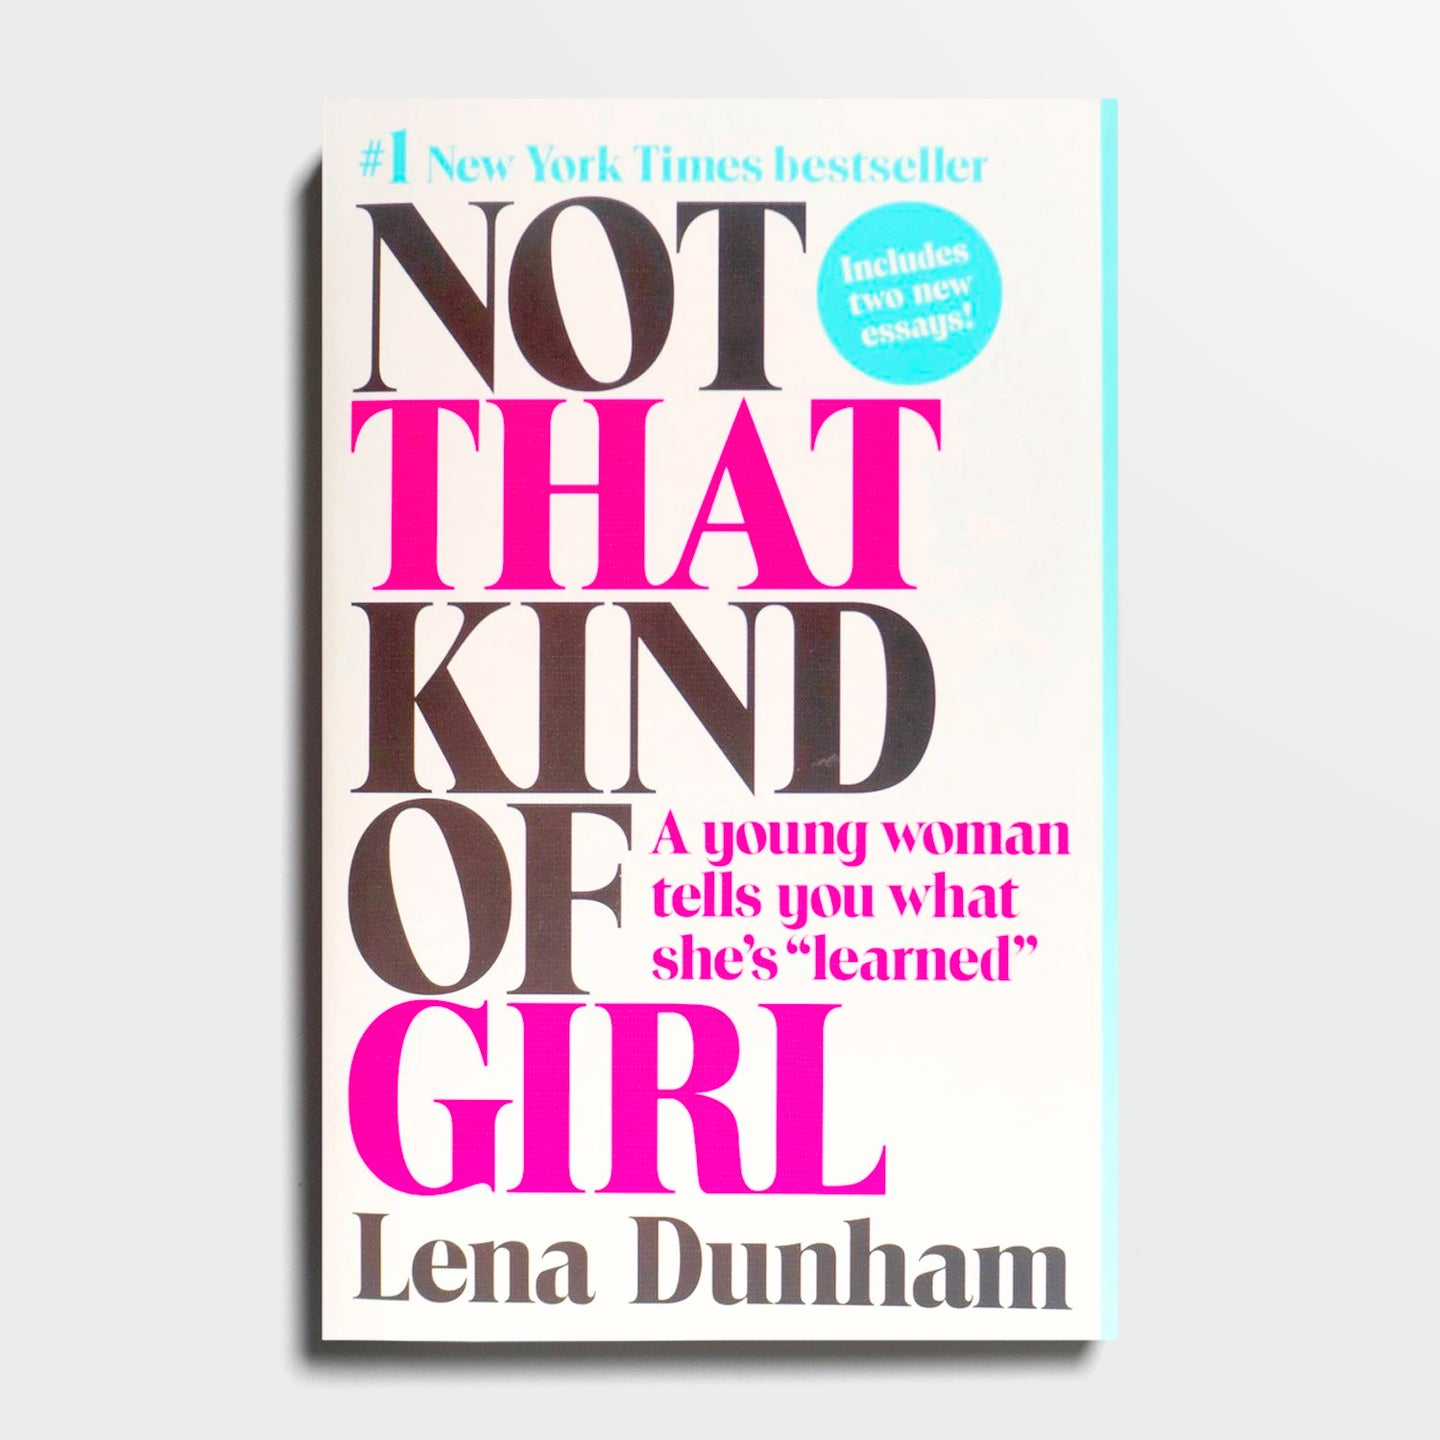 LENA DUNHAM | I'm not that kind of girl. A young woman tells you what she's